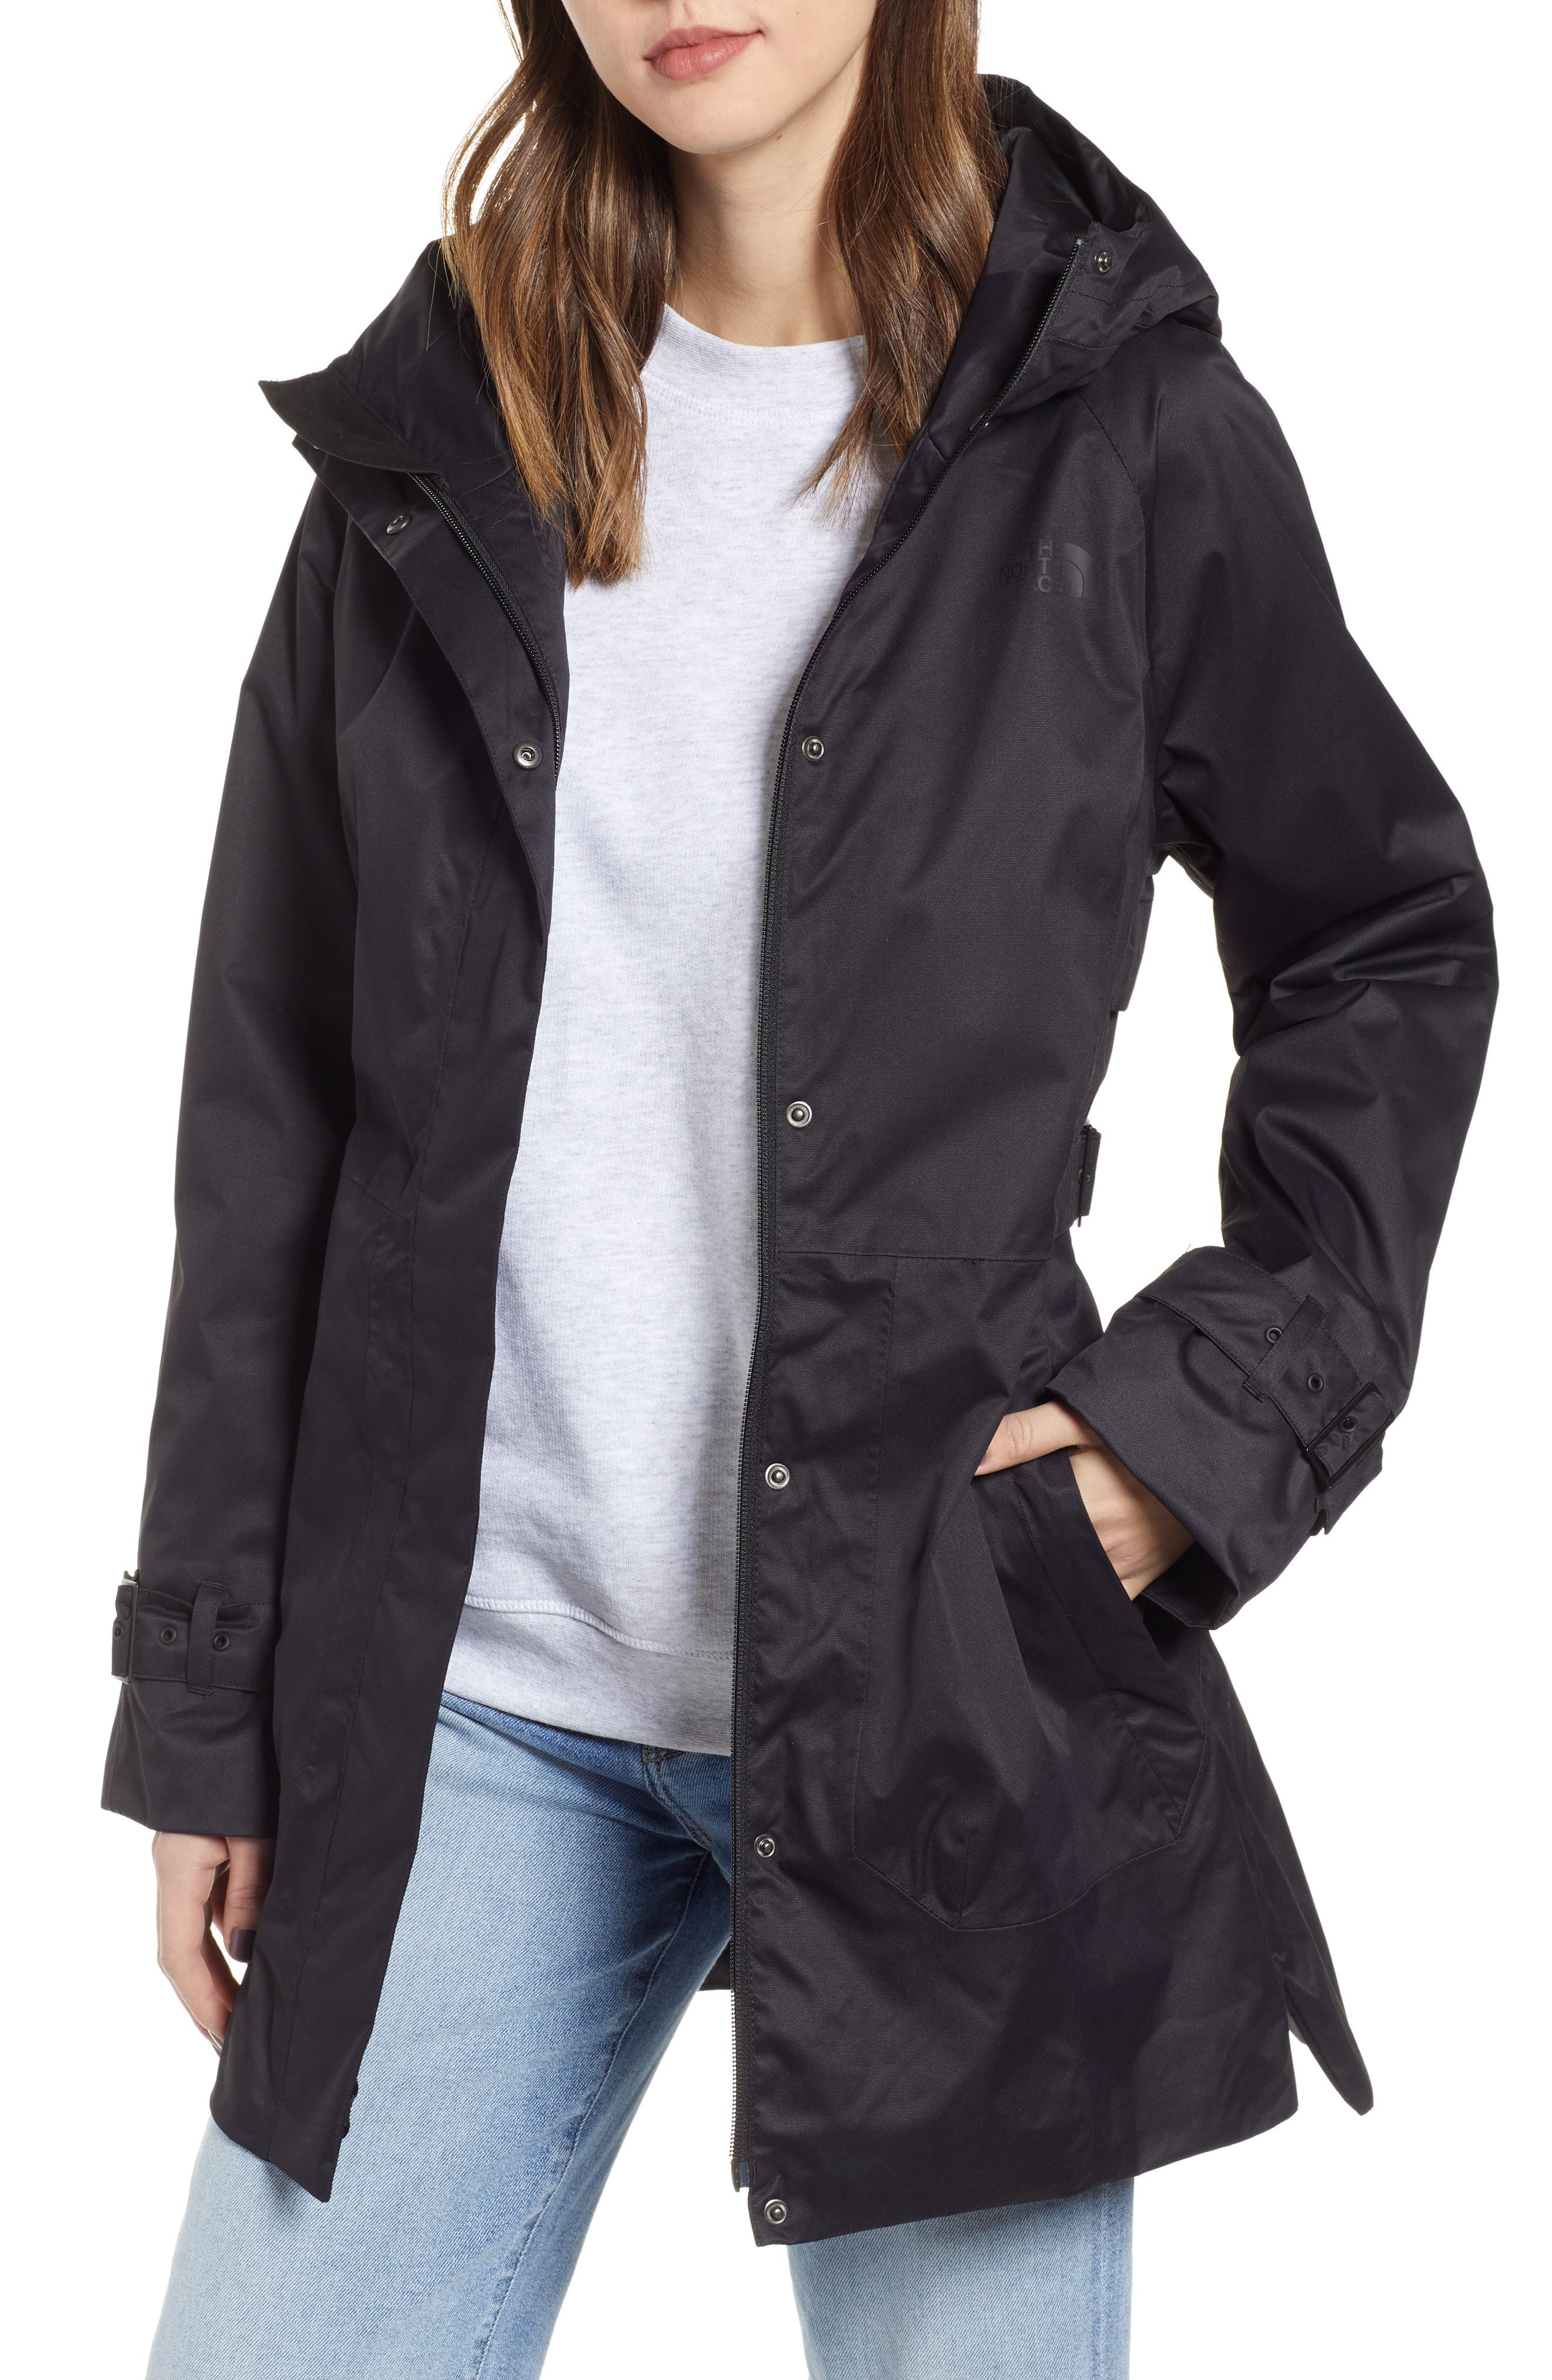 789527d20 the north face trench & raincoat coats for women - Buy best women's ...